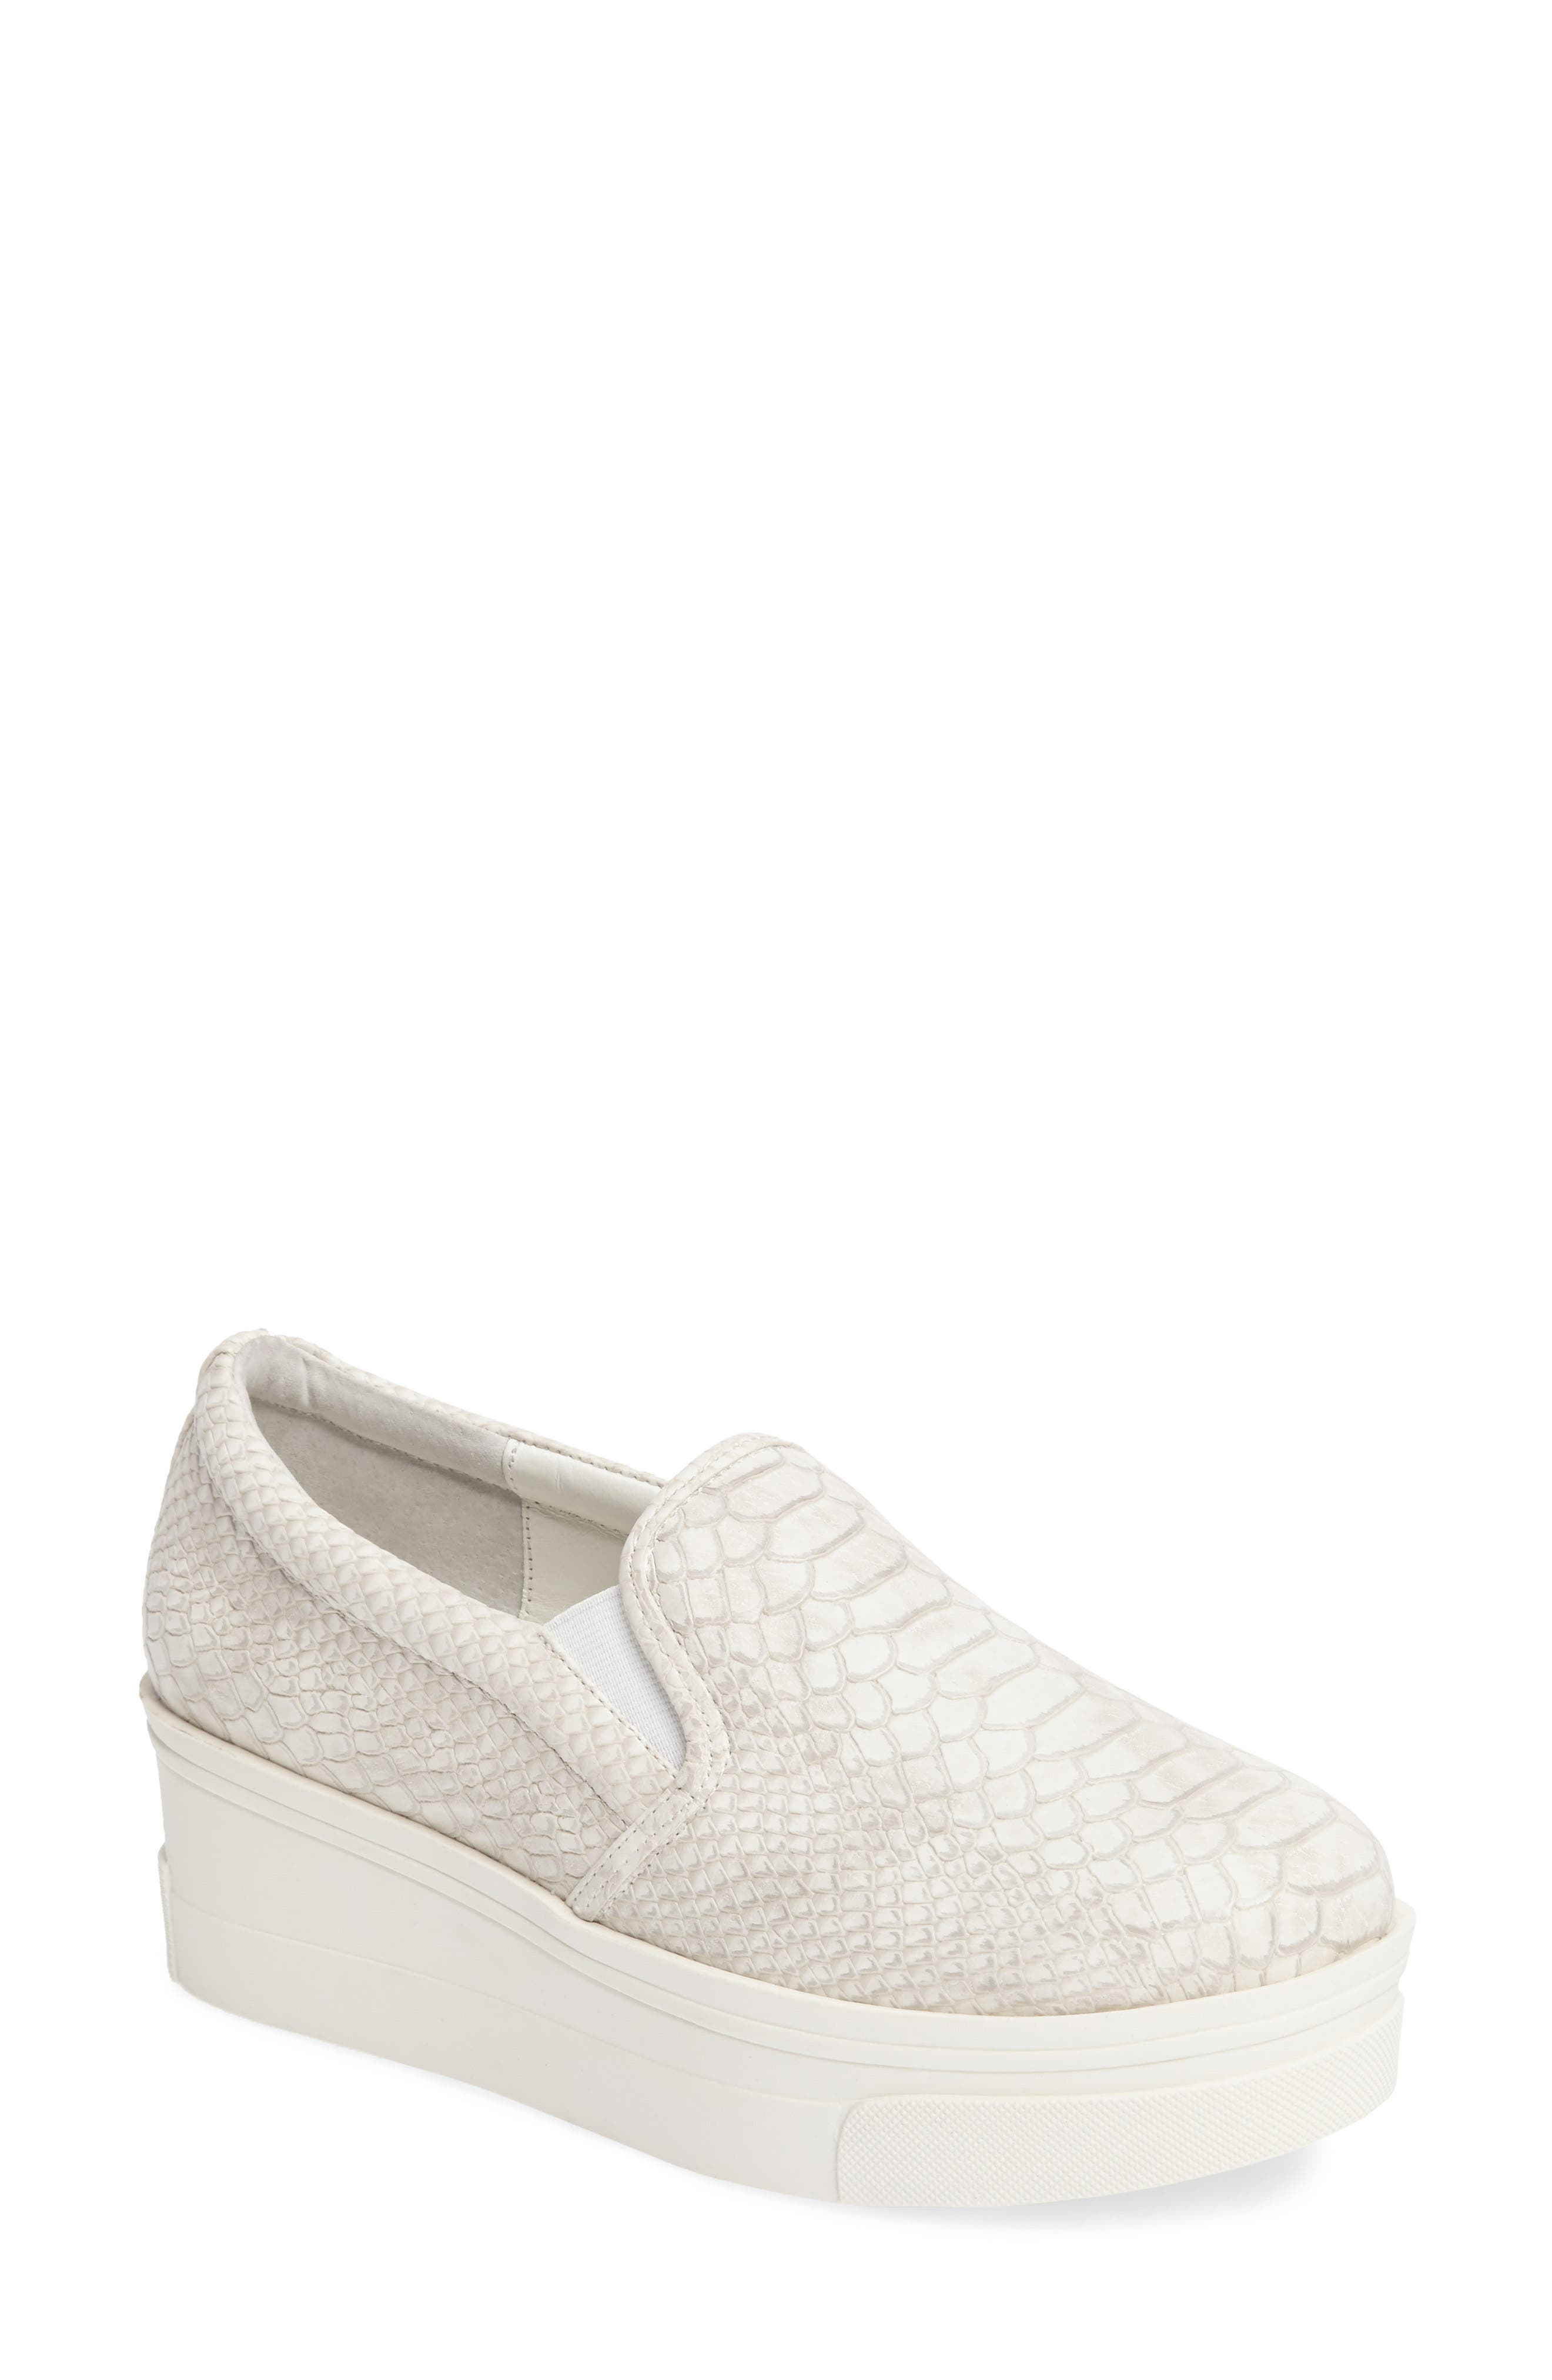 Genna Slip-On Sneaker,                             Main thumbnail 1, color,                             White Embossed Leather